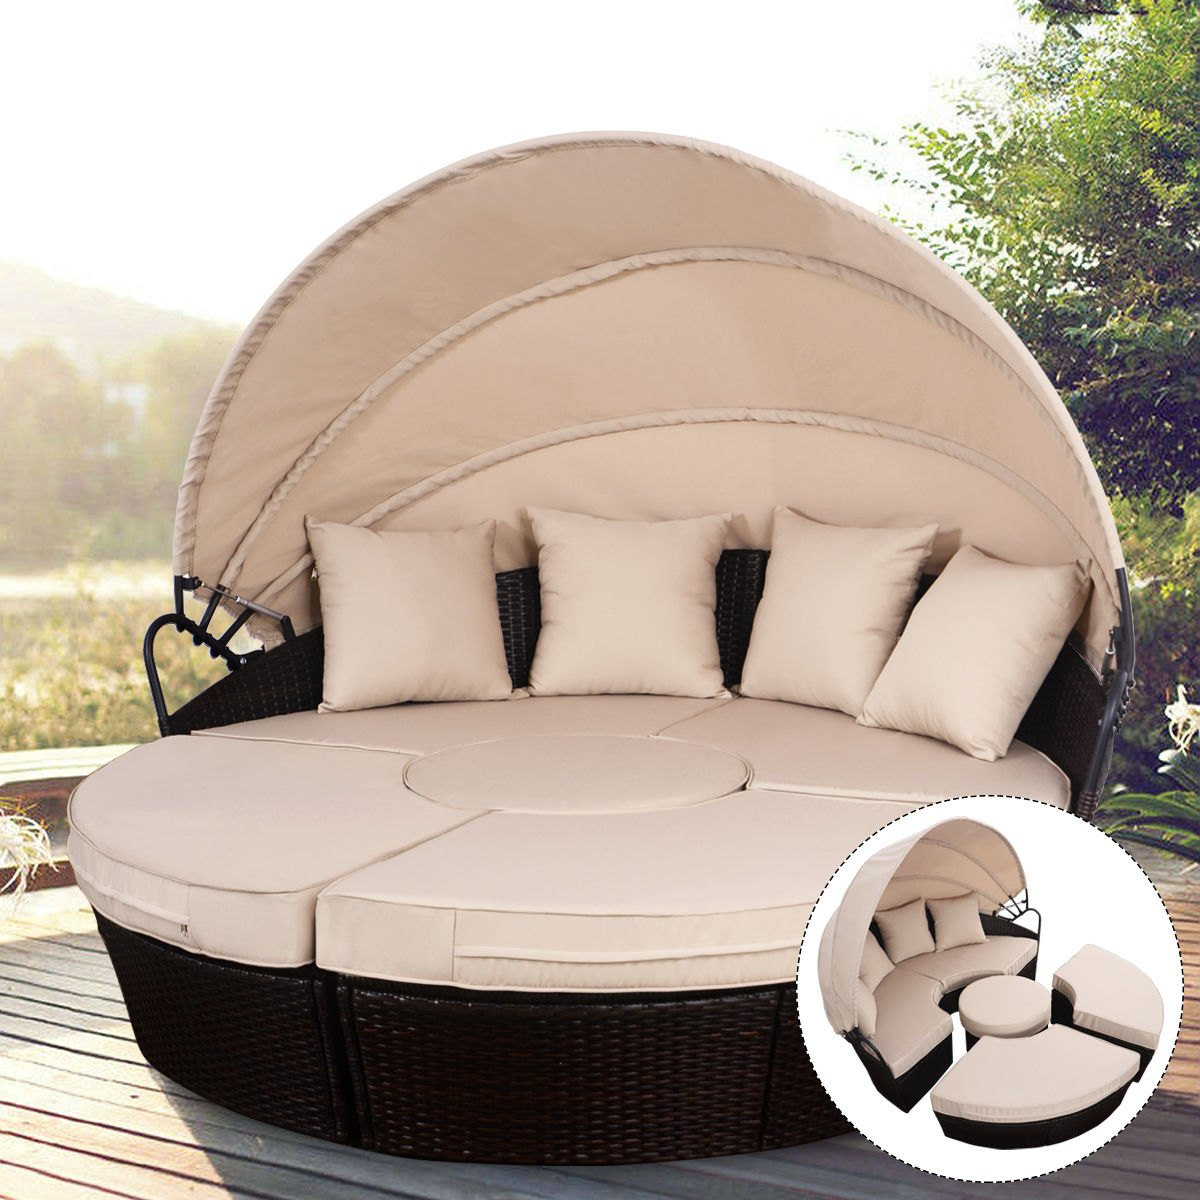 way outdoor mix brown rattan patio sofa furniture round foldable wicker accent table retractable canopy daybed ethan allen lamps antique pedestal end west elm elephant lamp inch